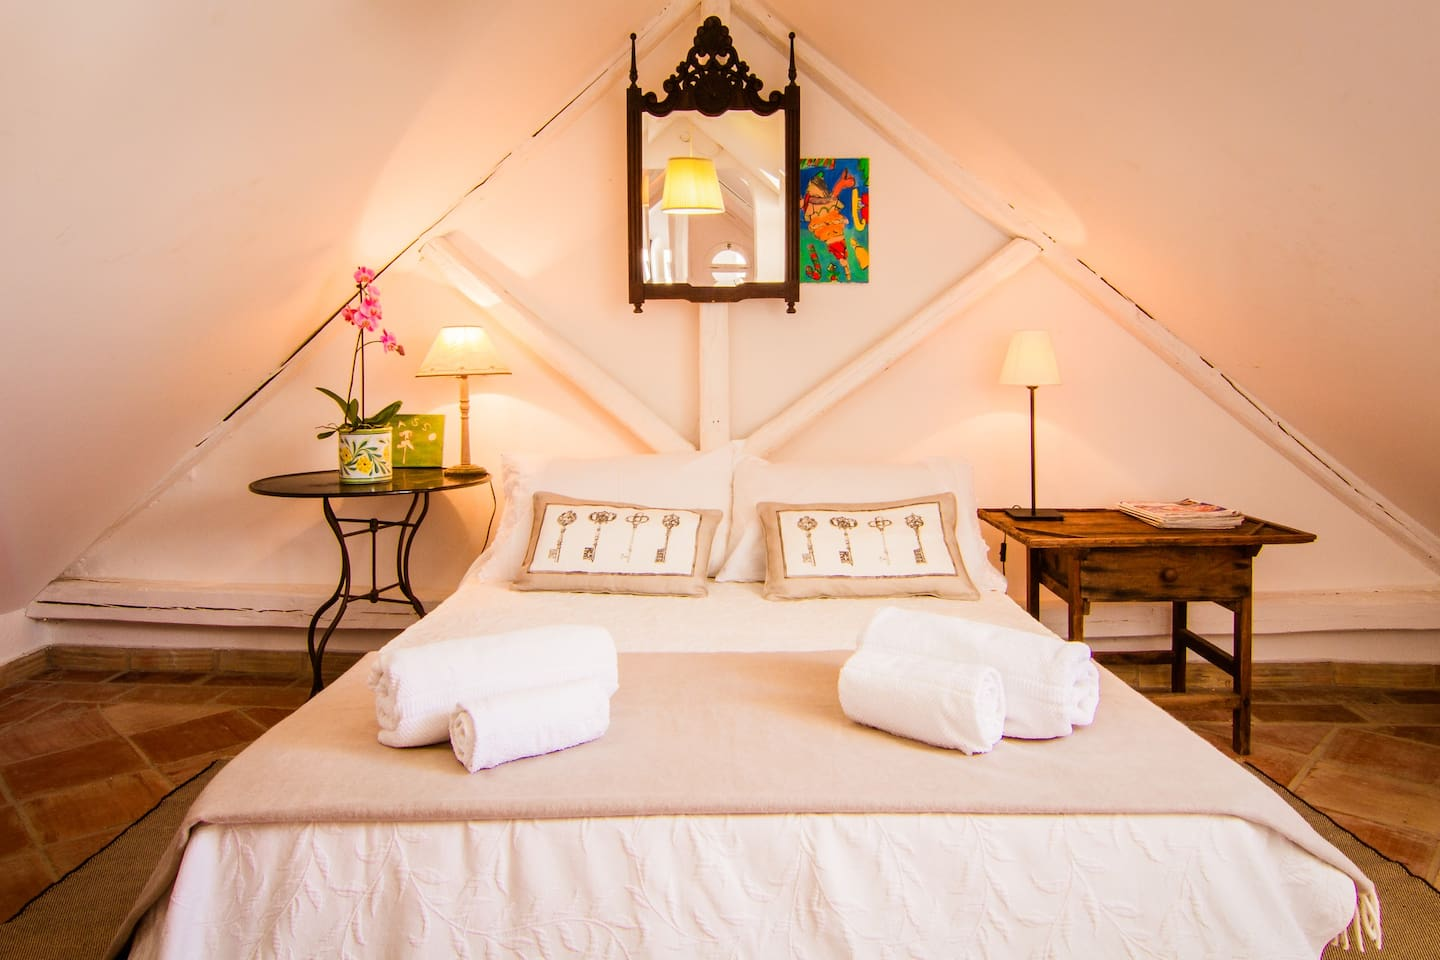 attic suite / room